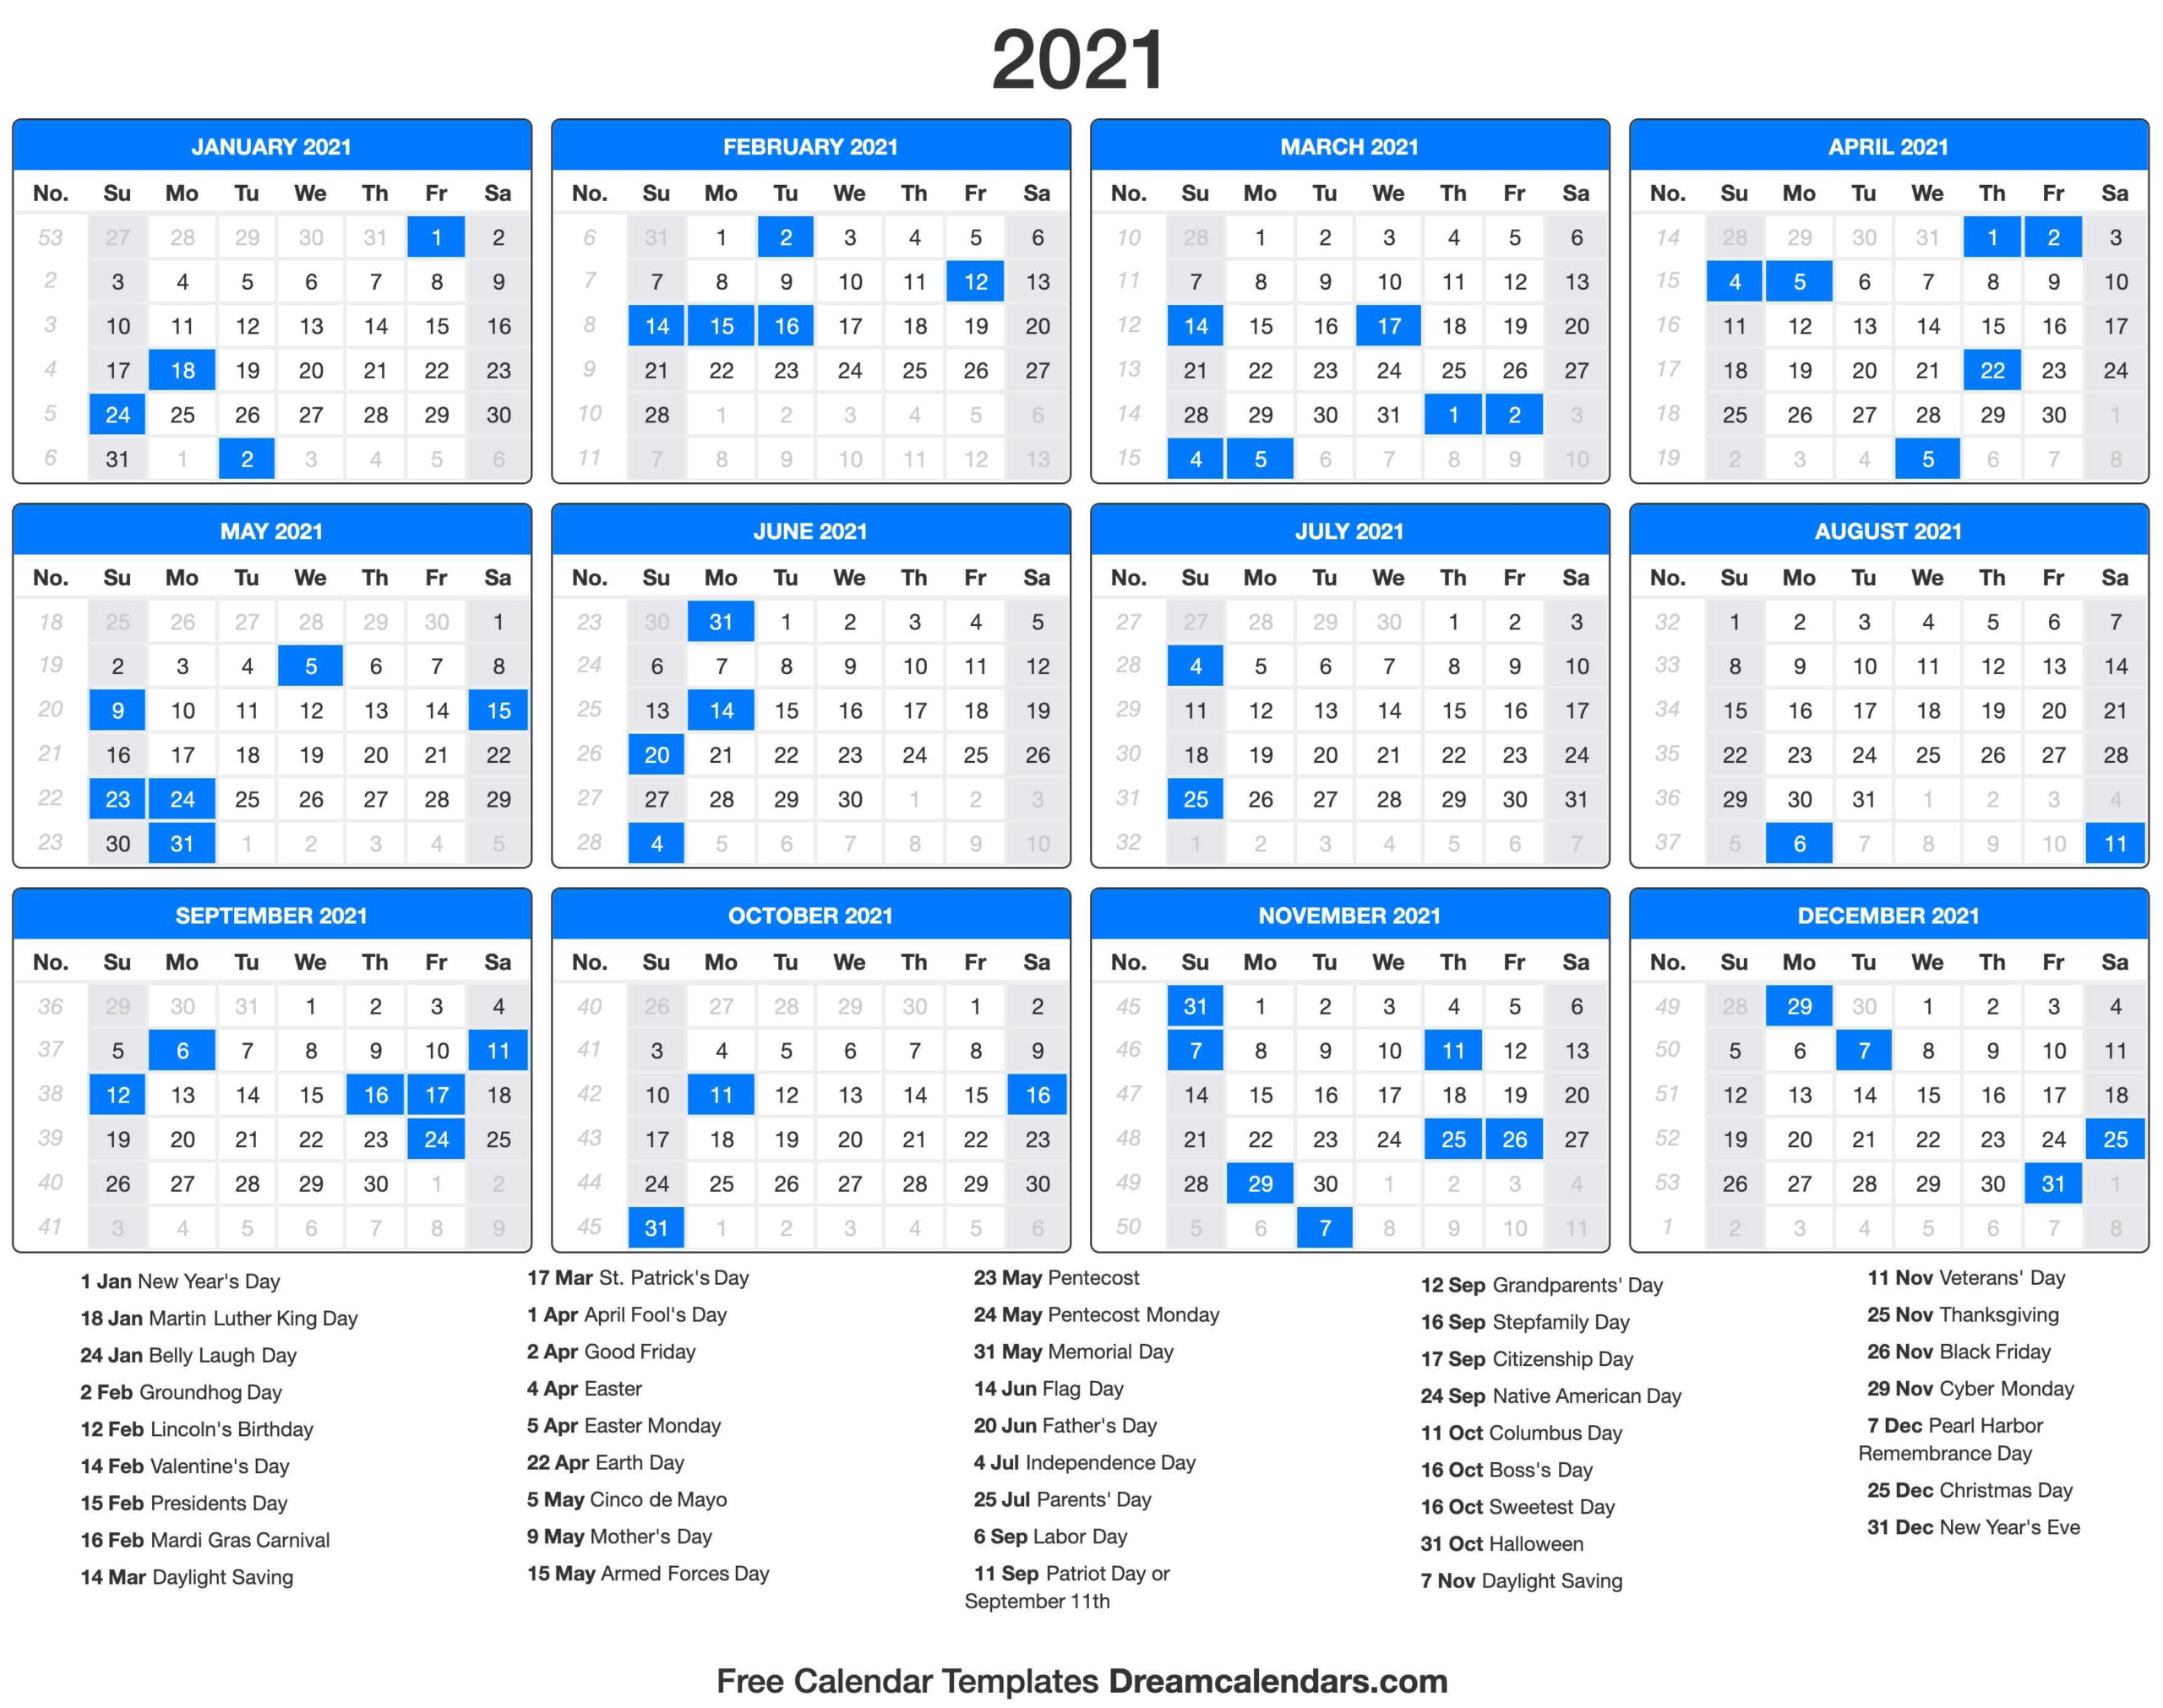 2021 Calendar With Holidays - Dream Calendars